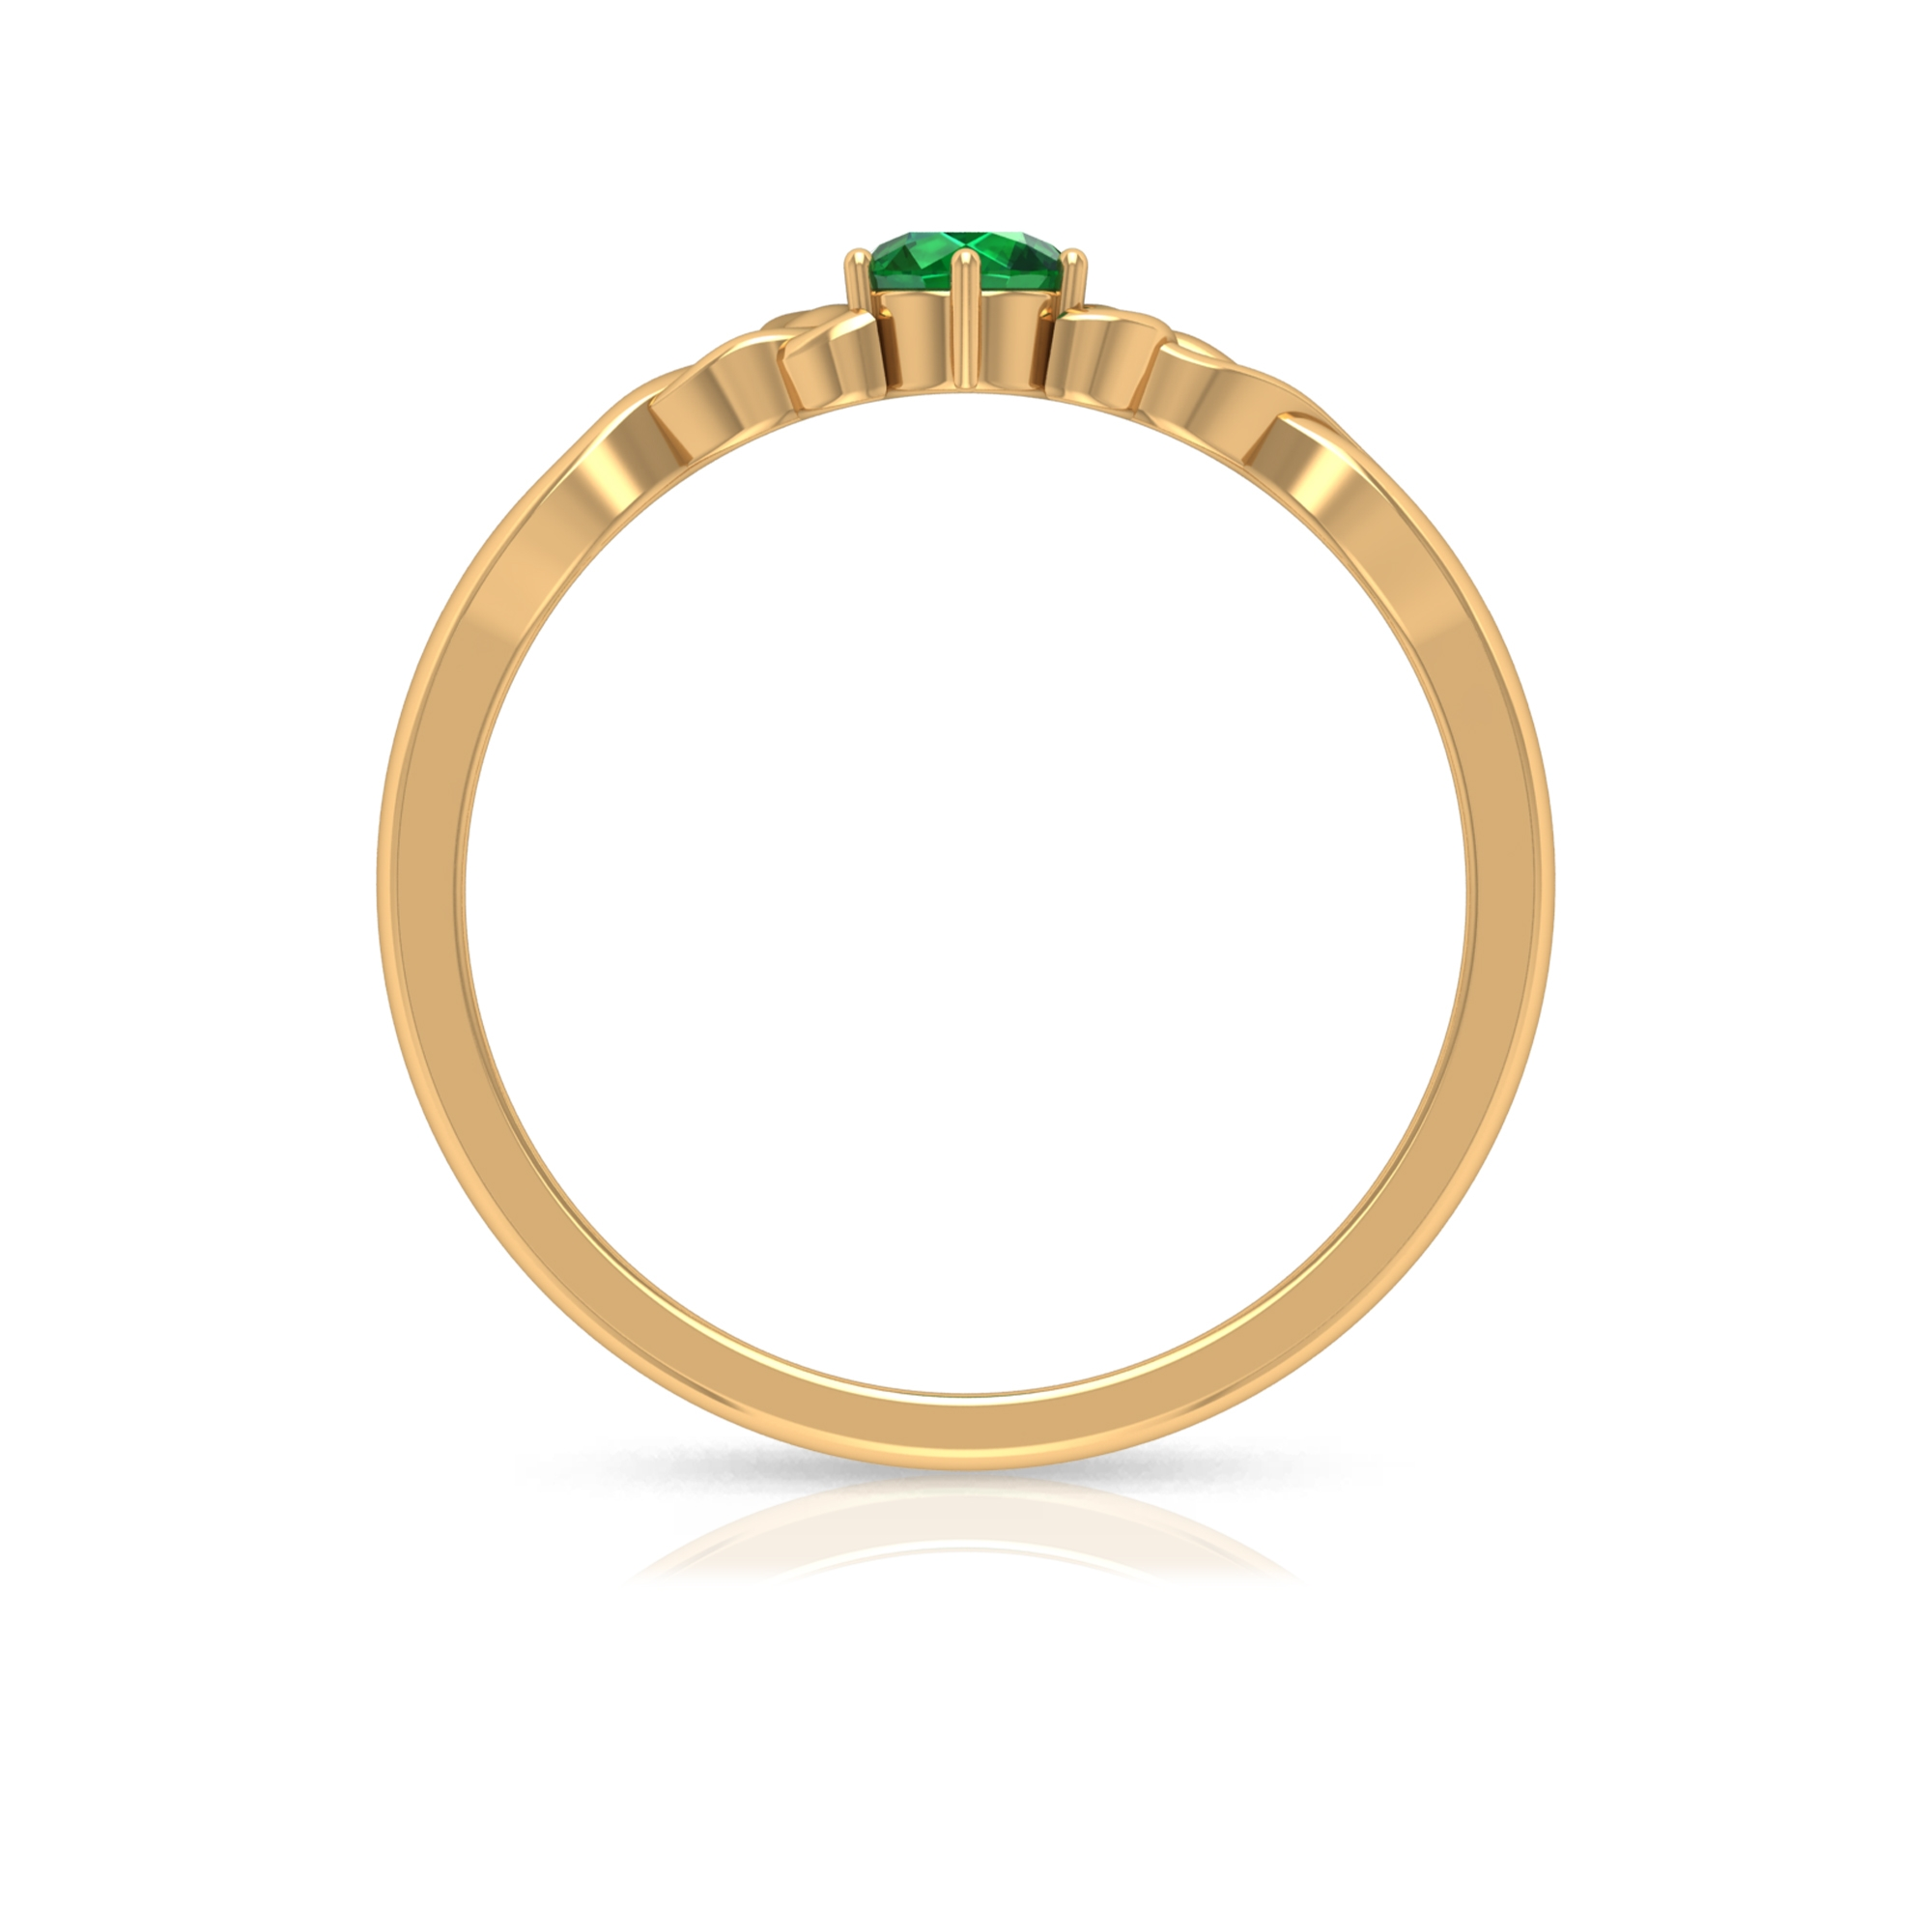 May Birthstone 4 MM Emerald Solitaire Ring in 6 Prong Setting with Celtic Pattern